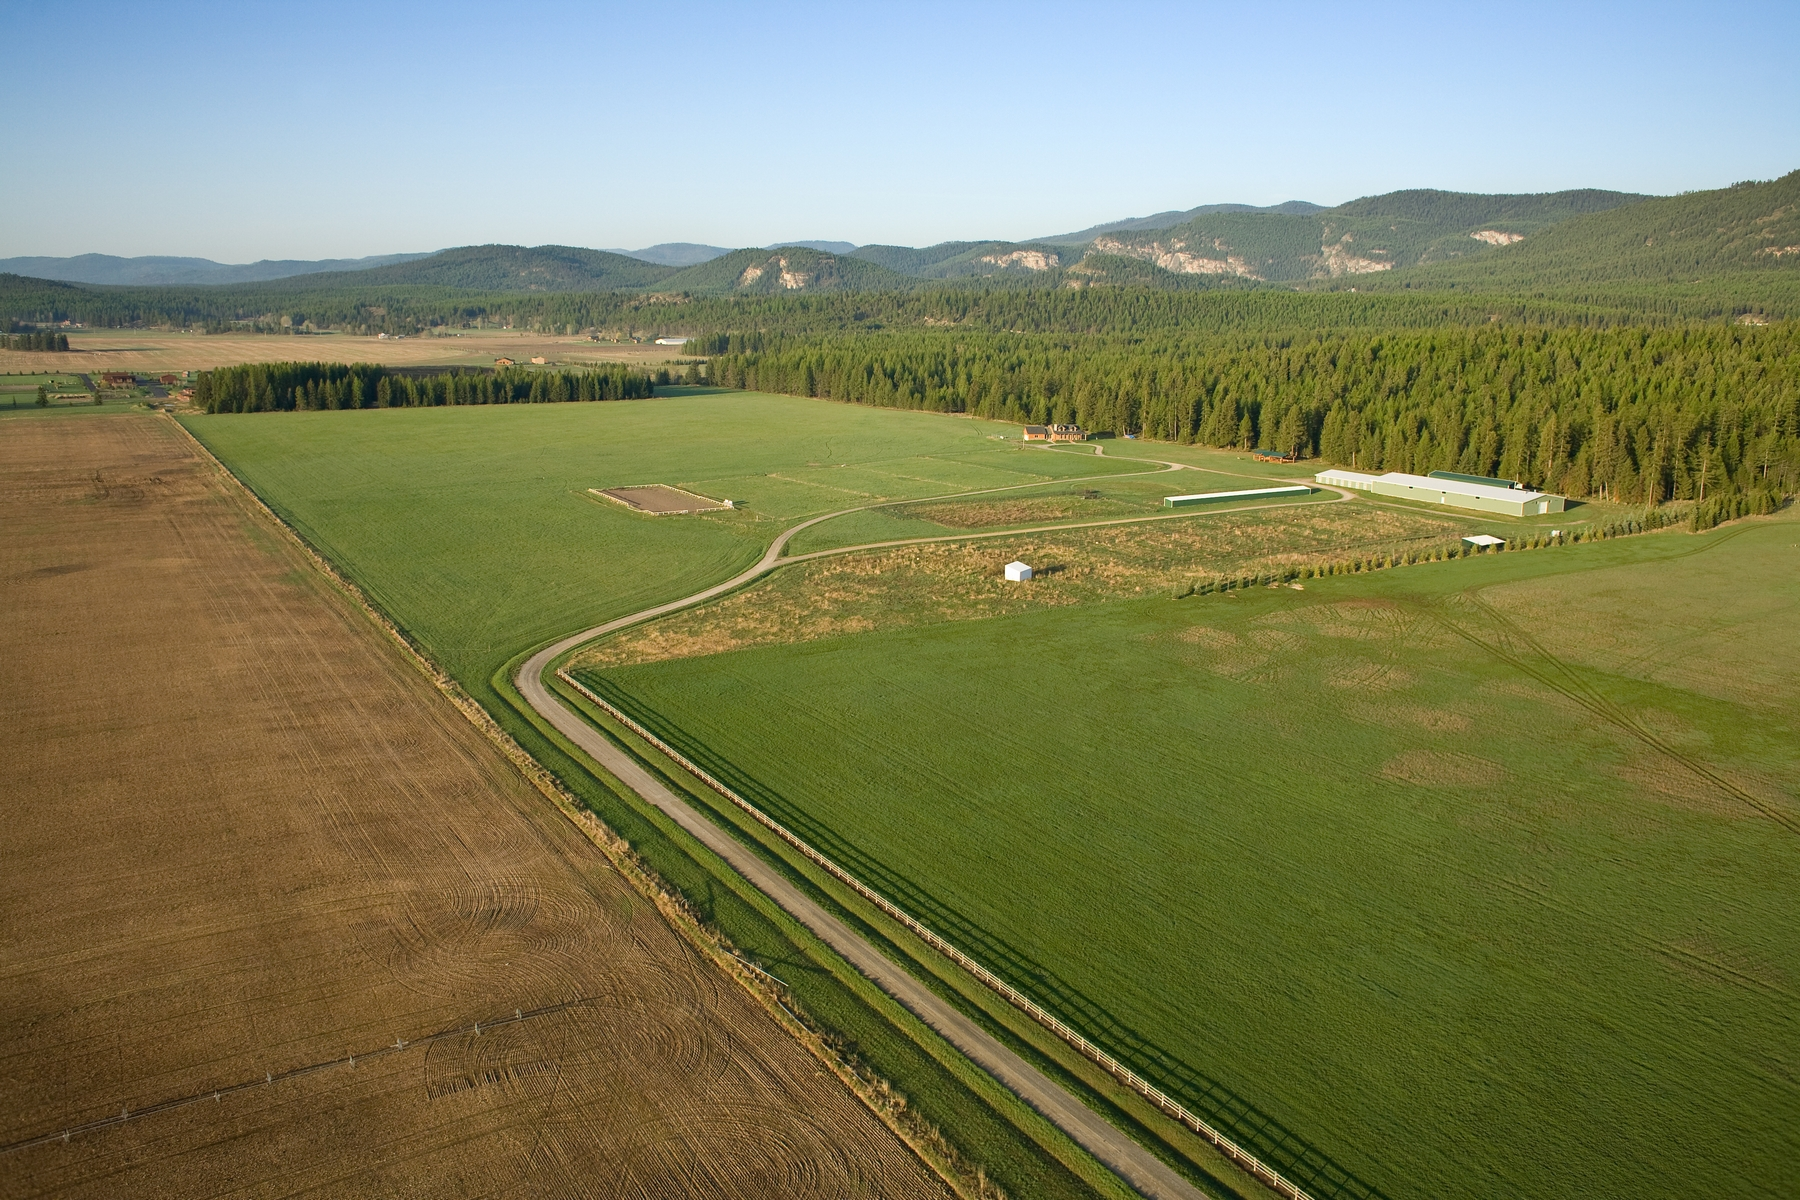 Land for Sale at 567 & 573 Twin Bridges Rd , Whitefish, MT 59937 567 & 573 Twin Bridges Rd, Whitefish, Montana, 59937 United States